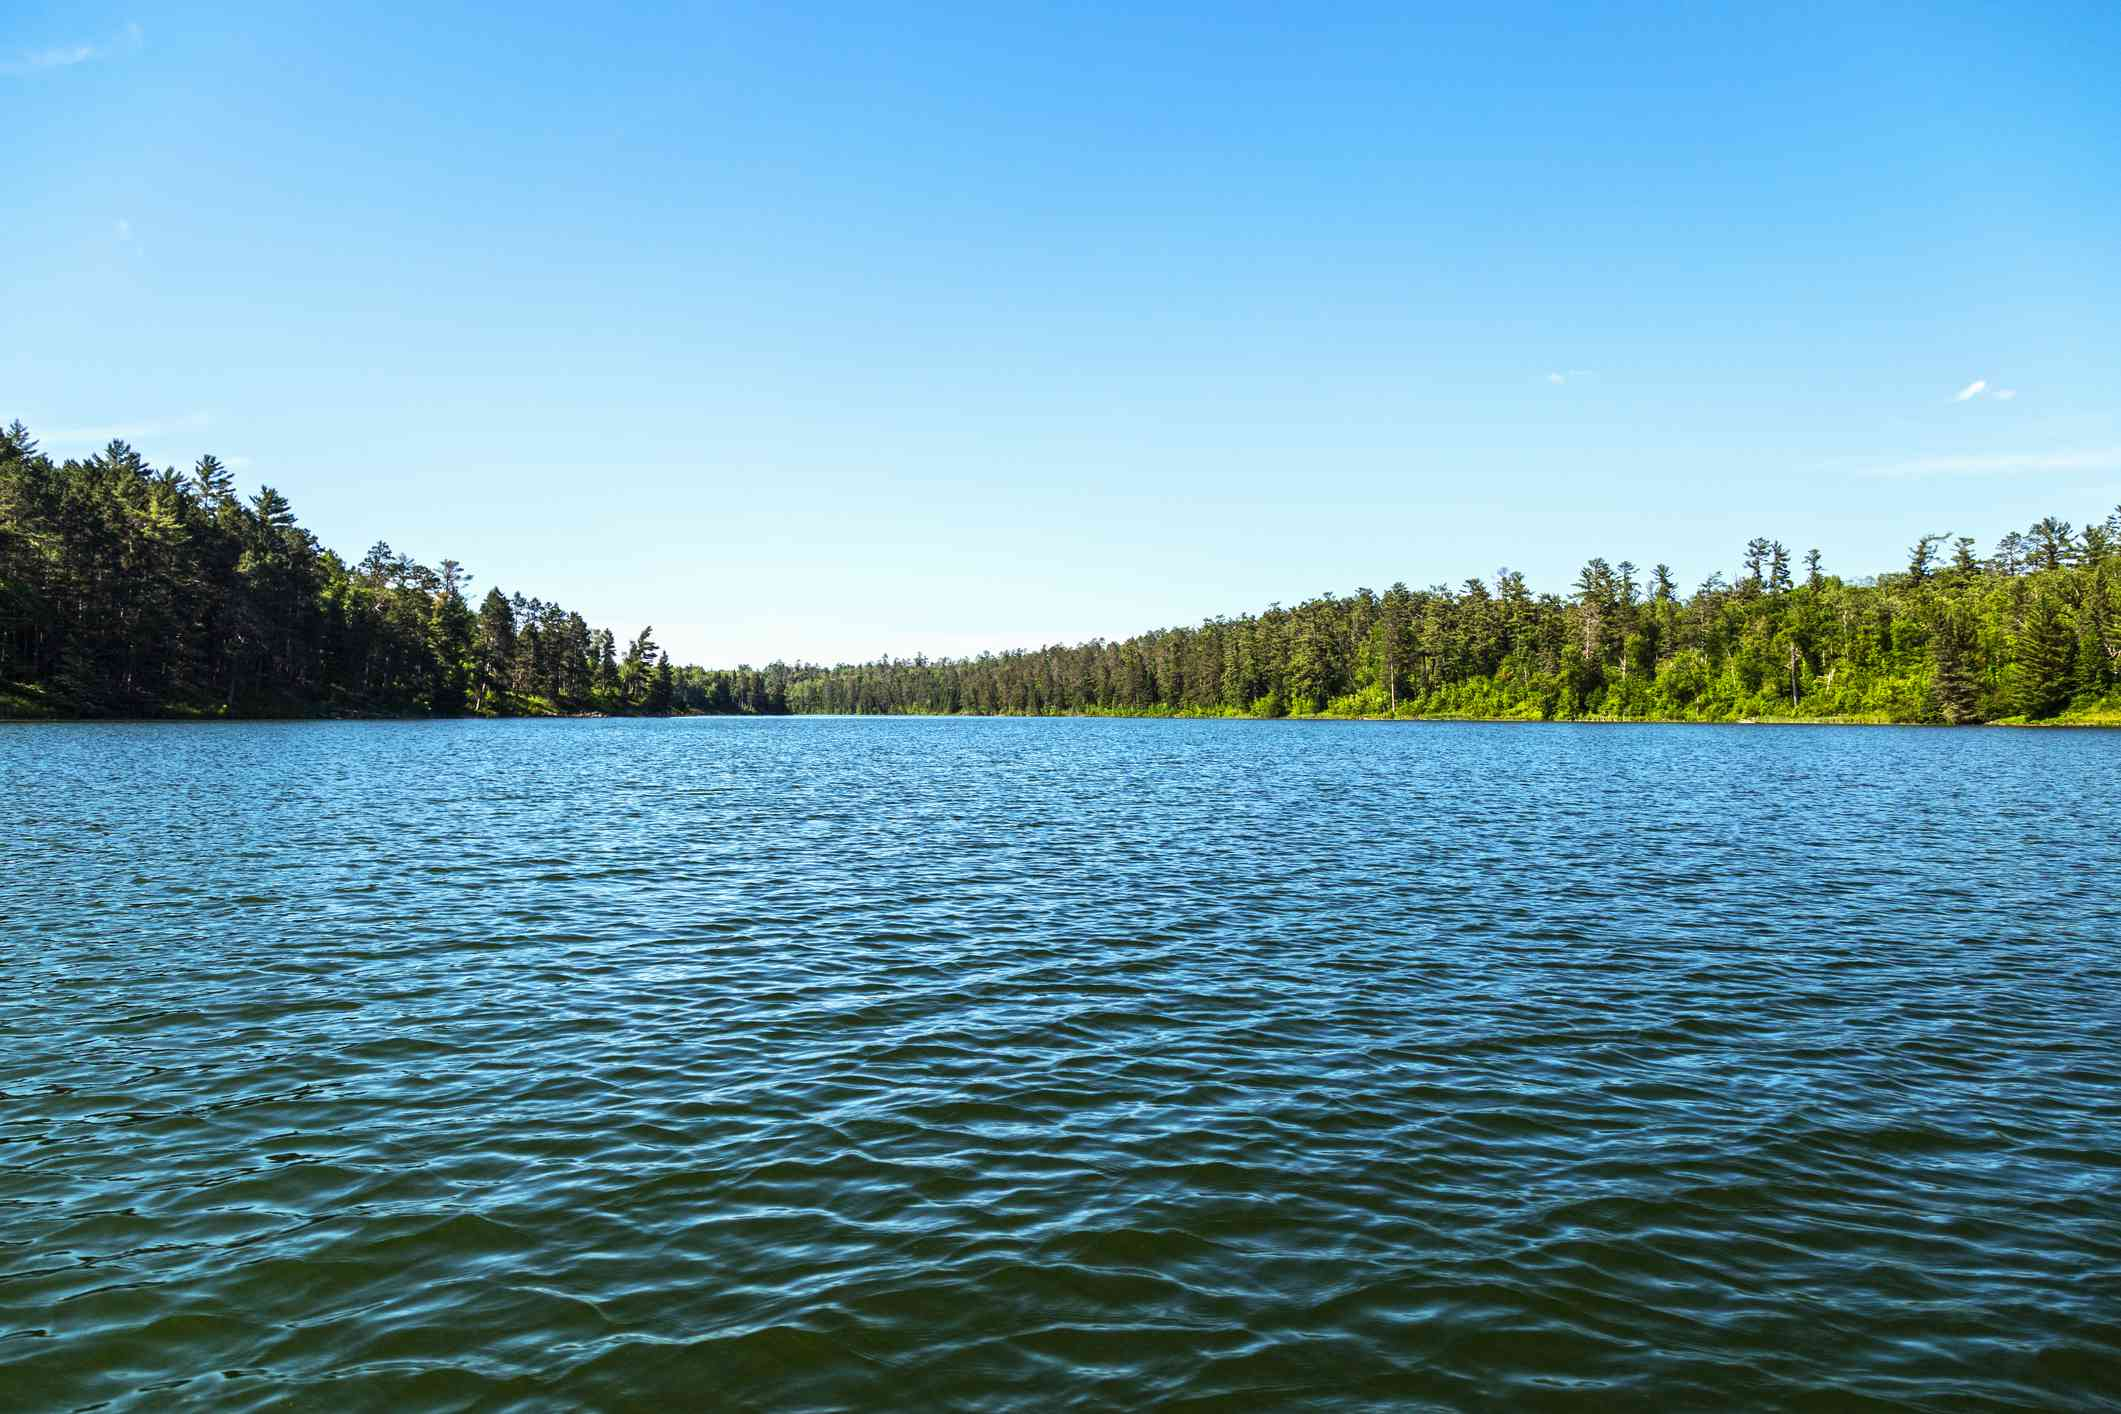 Lake Itasca, with green trees in the distance